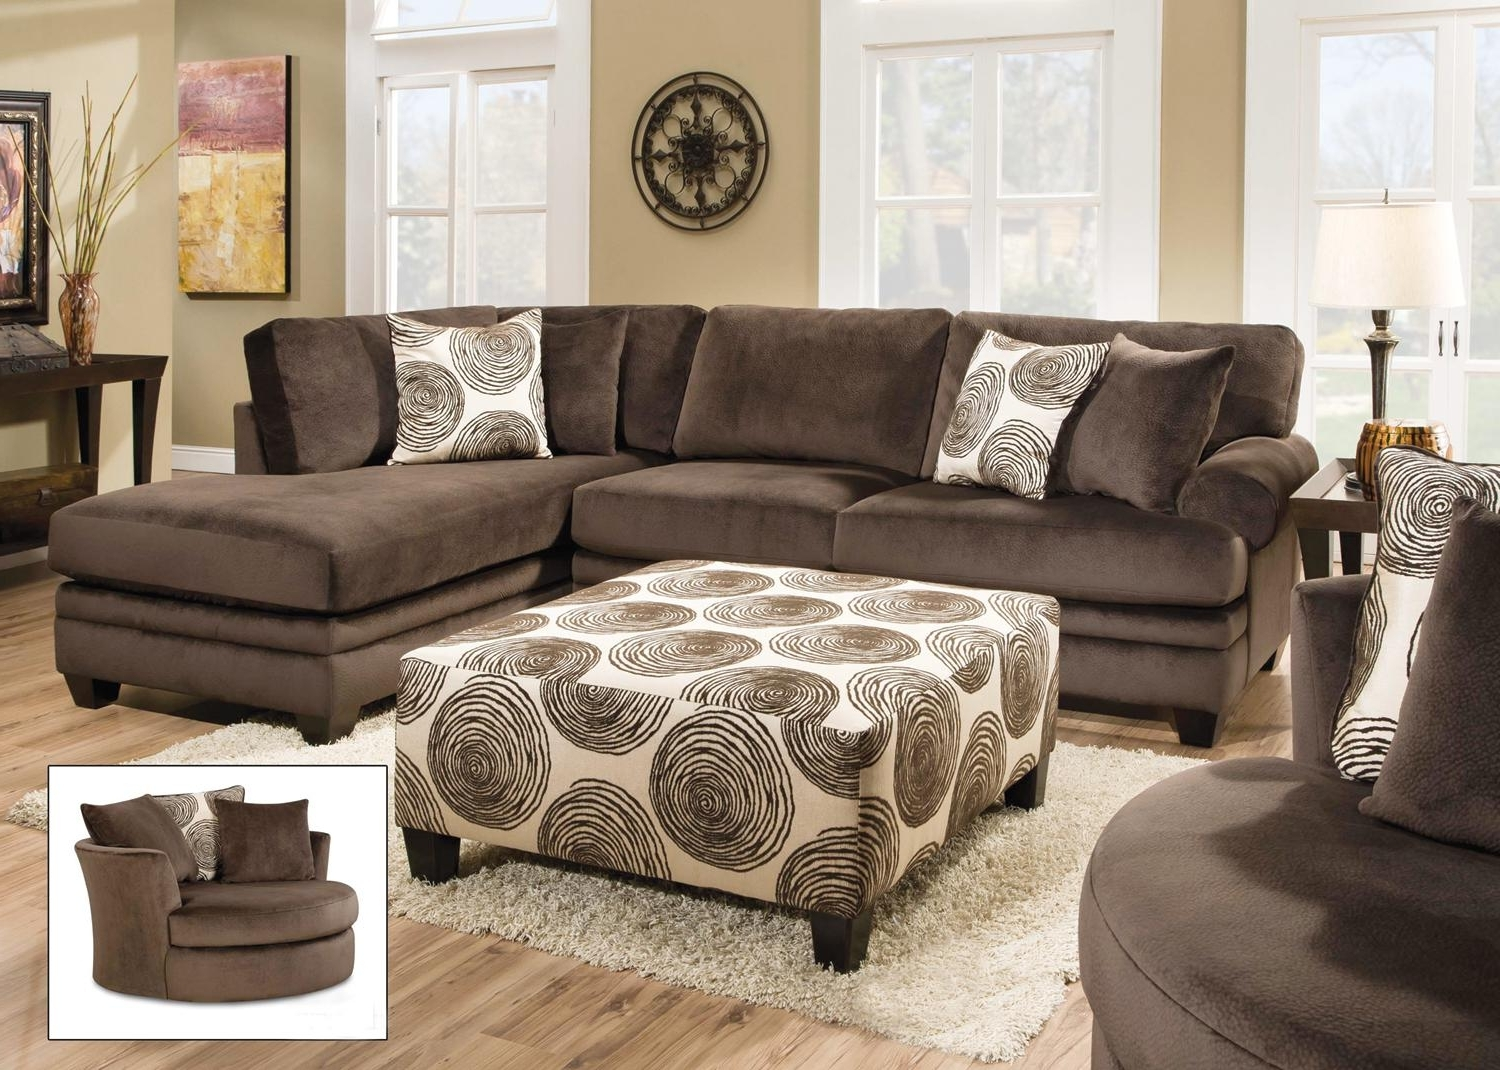 Sectional Sofas At Birmingham Al Intended For Trendy Furniture : Big Lots Couch New New Sectional Sleeper Sofa Big Lots (View 13 of 20)